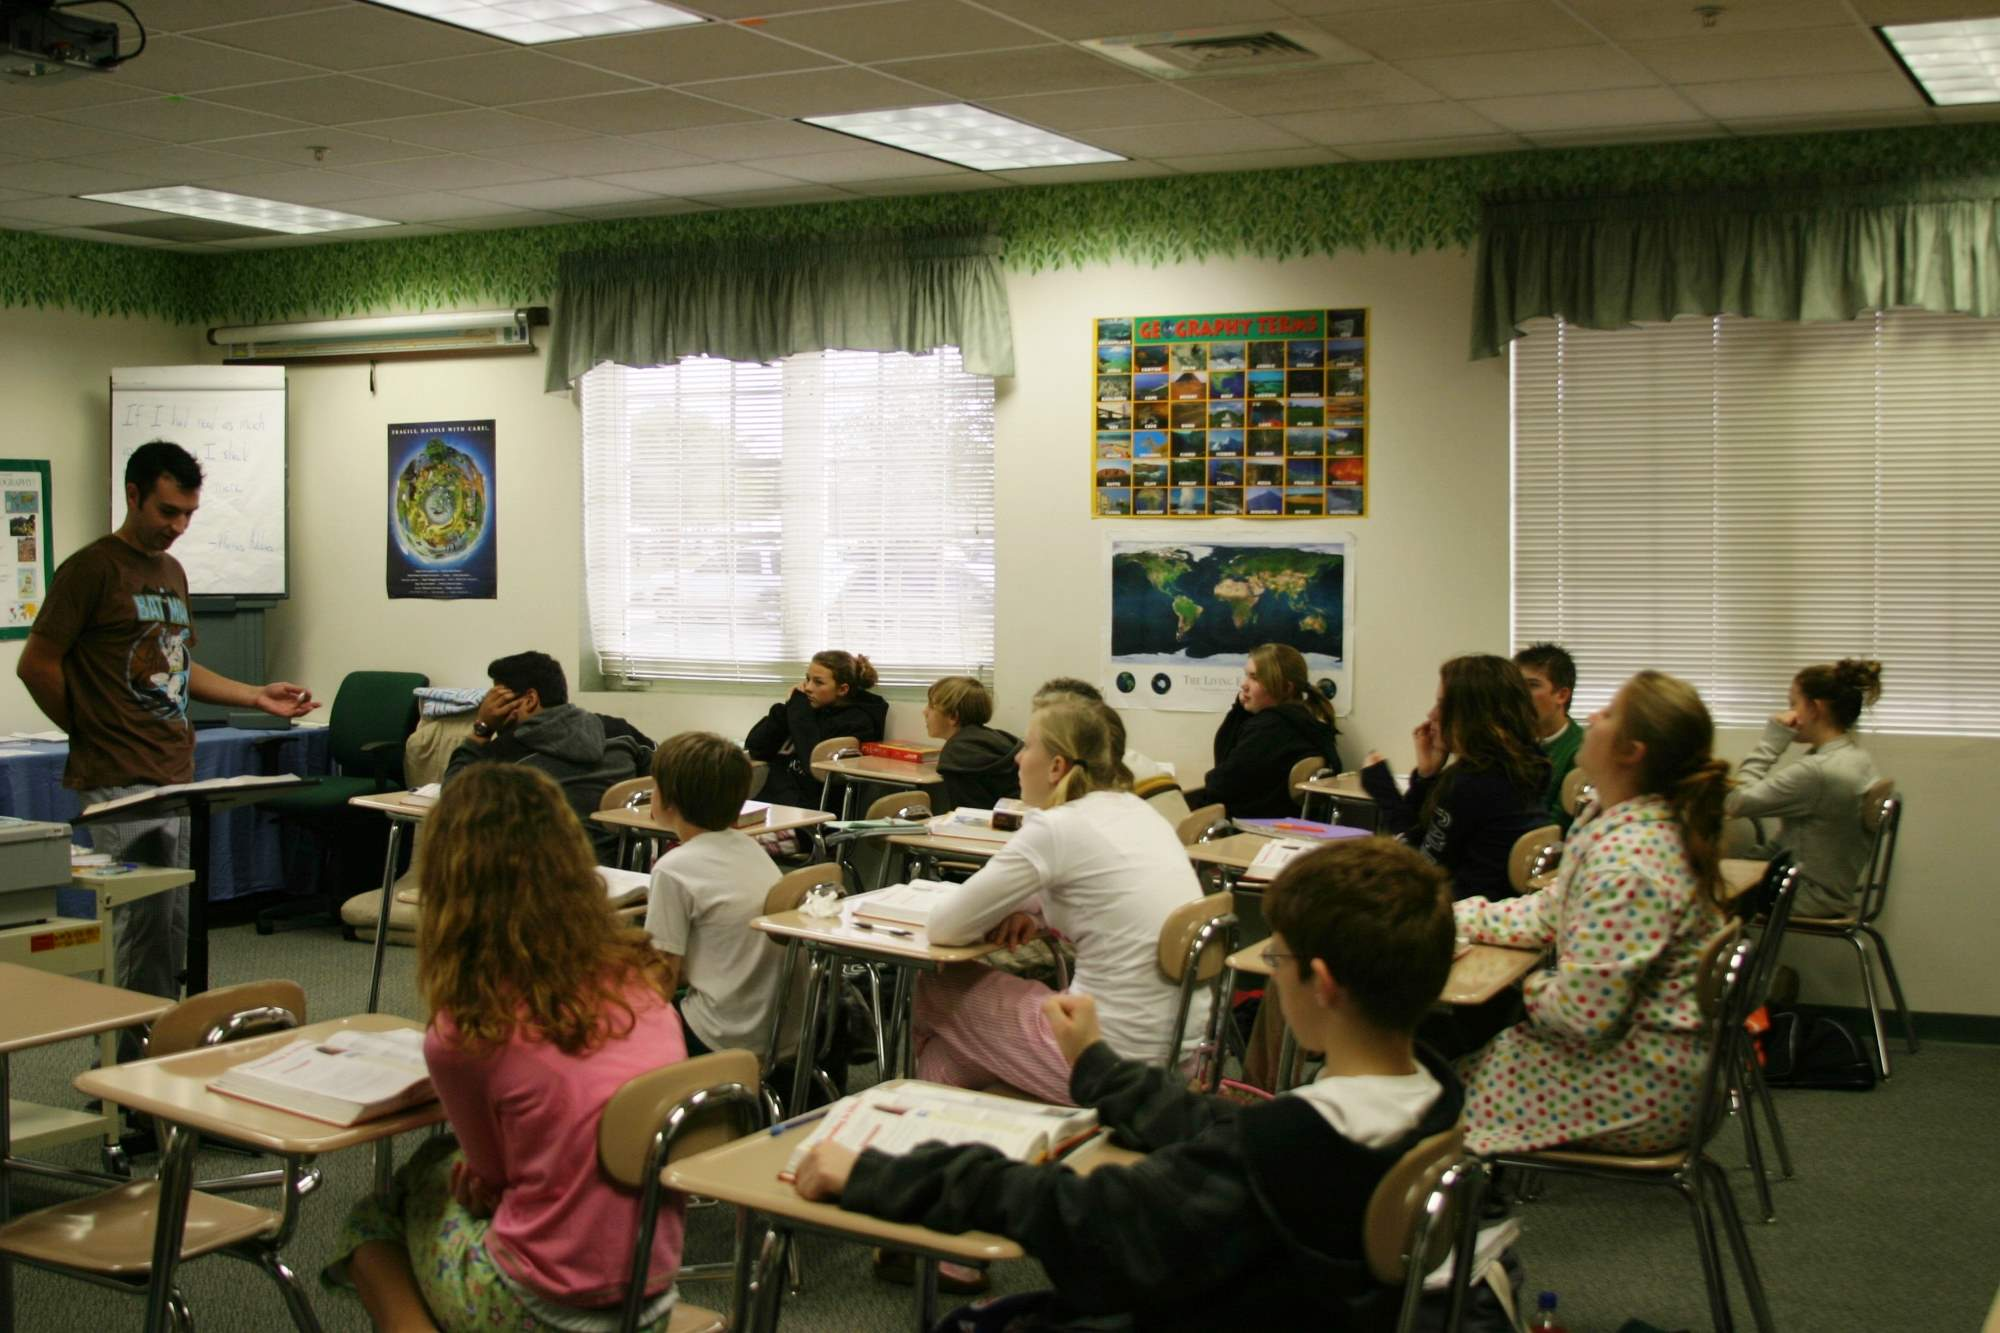 Middle School image 13 of 37